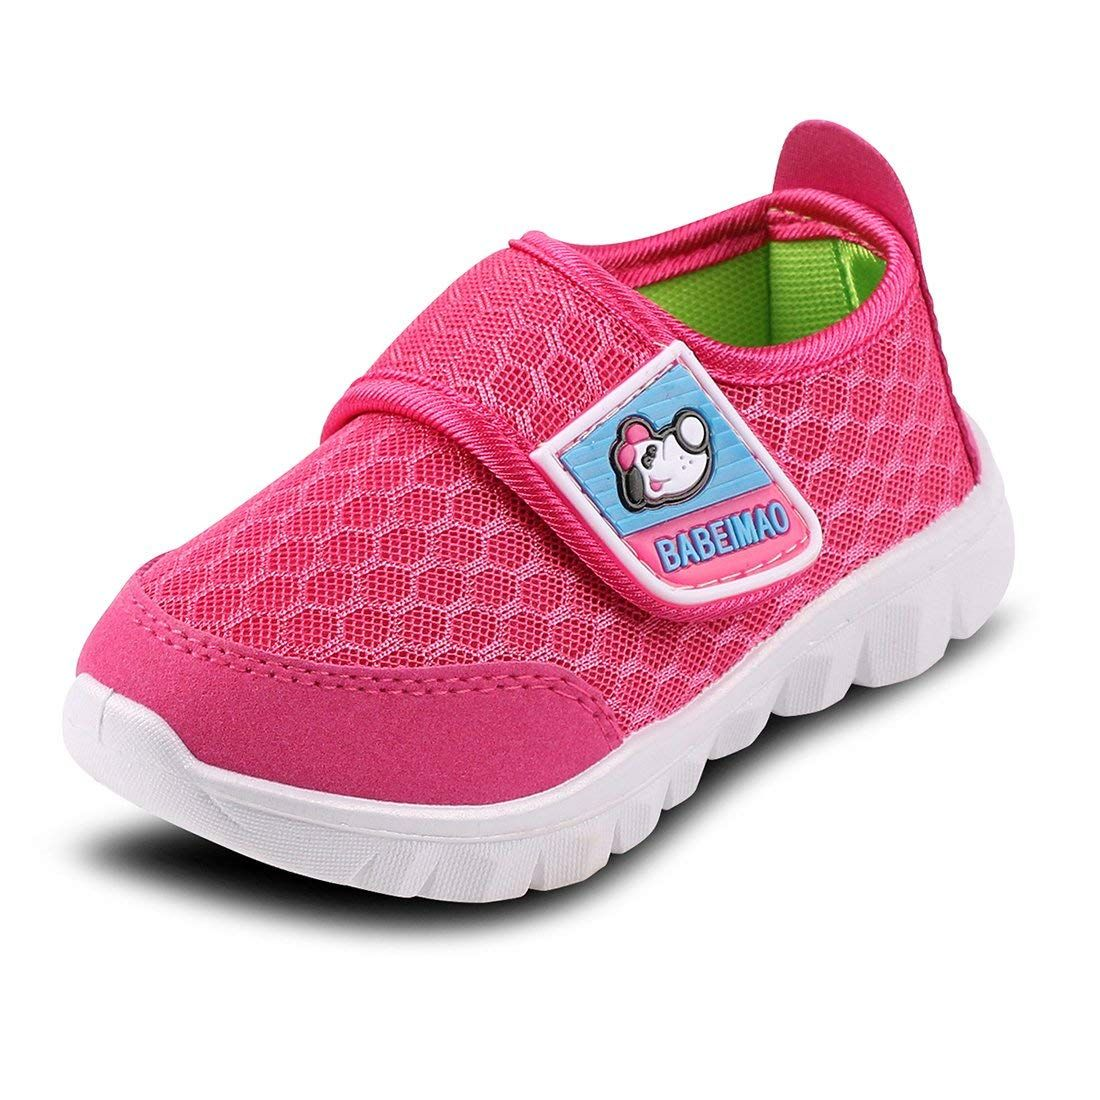 5d6e5d727f0348 Baby Sneaker Shoes for Girls Boy Kids Breathable Mesh Light Weight Athletic  Running Walking Casual Shoes